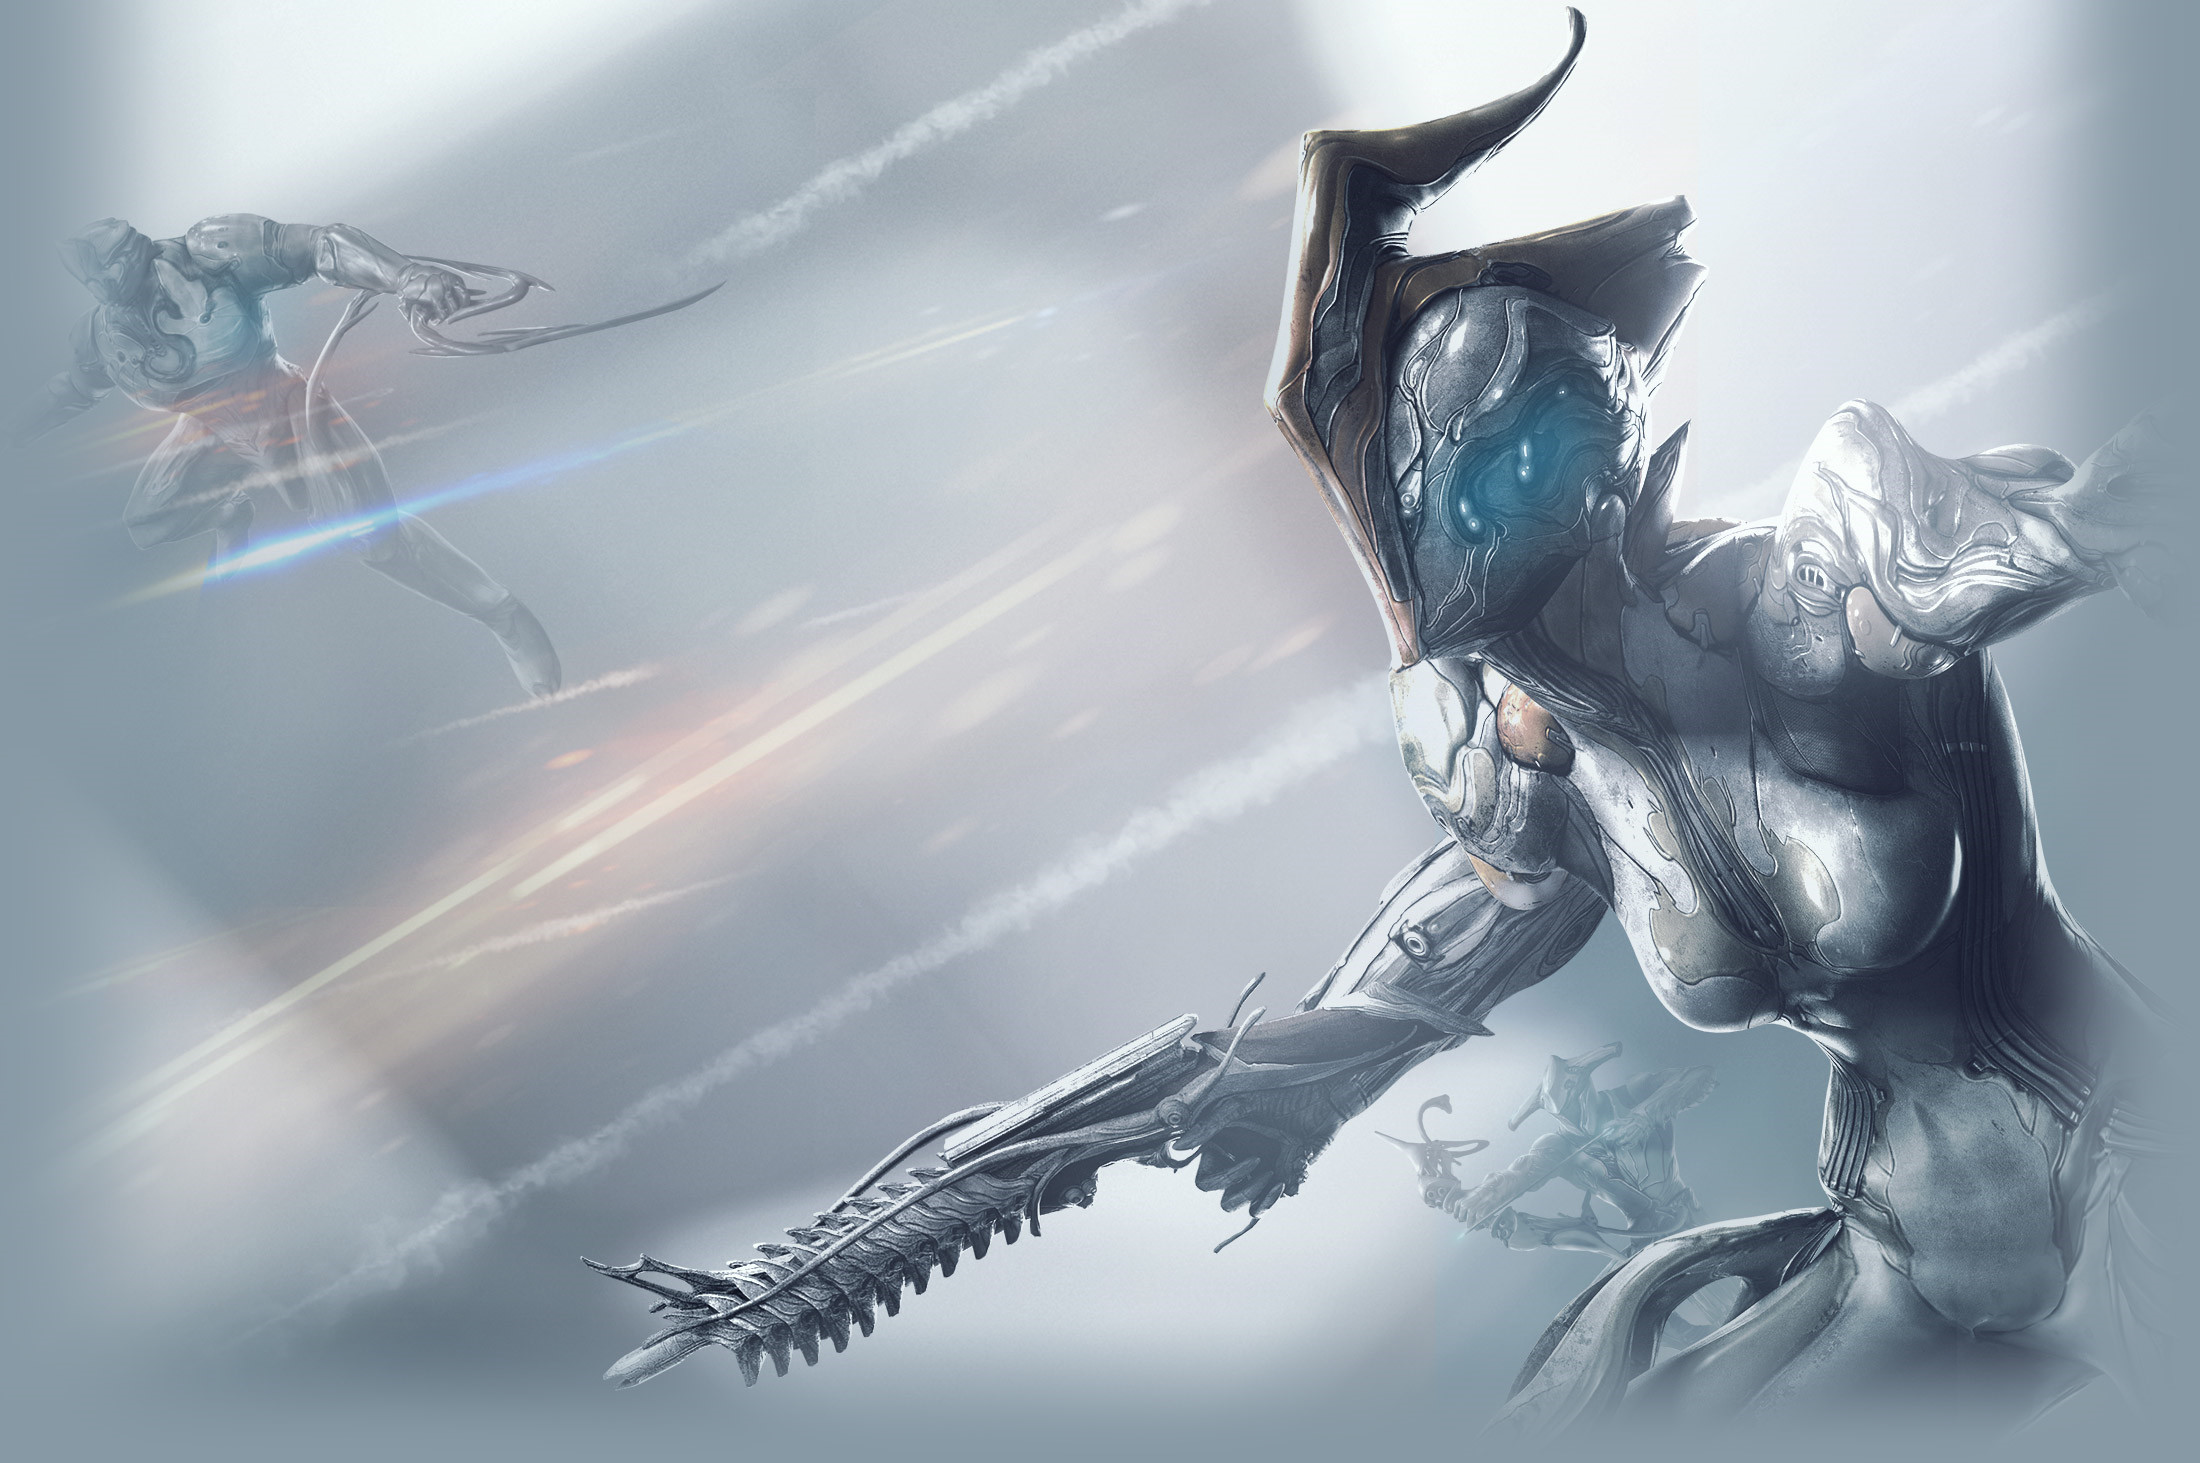 Find this Pin and more on Warframe Wallpapers by aymyao.